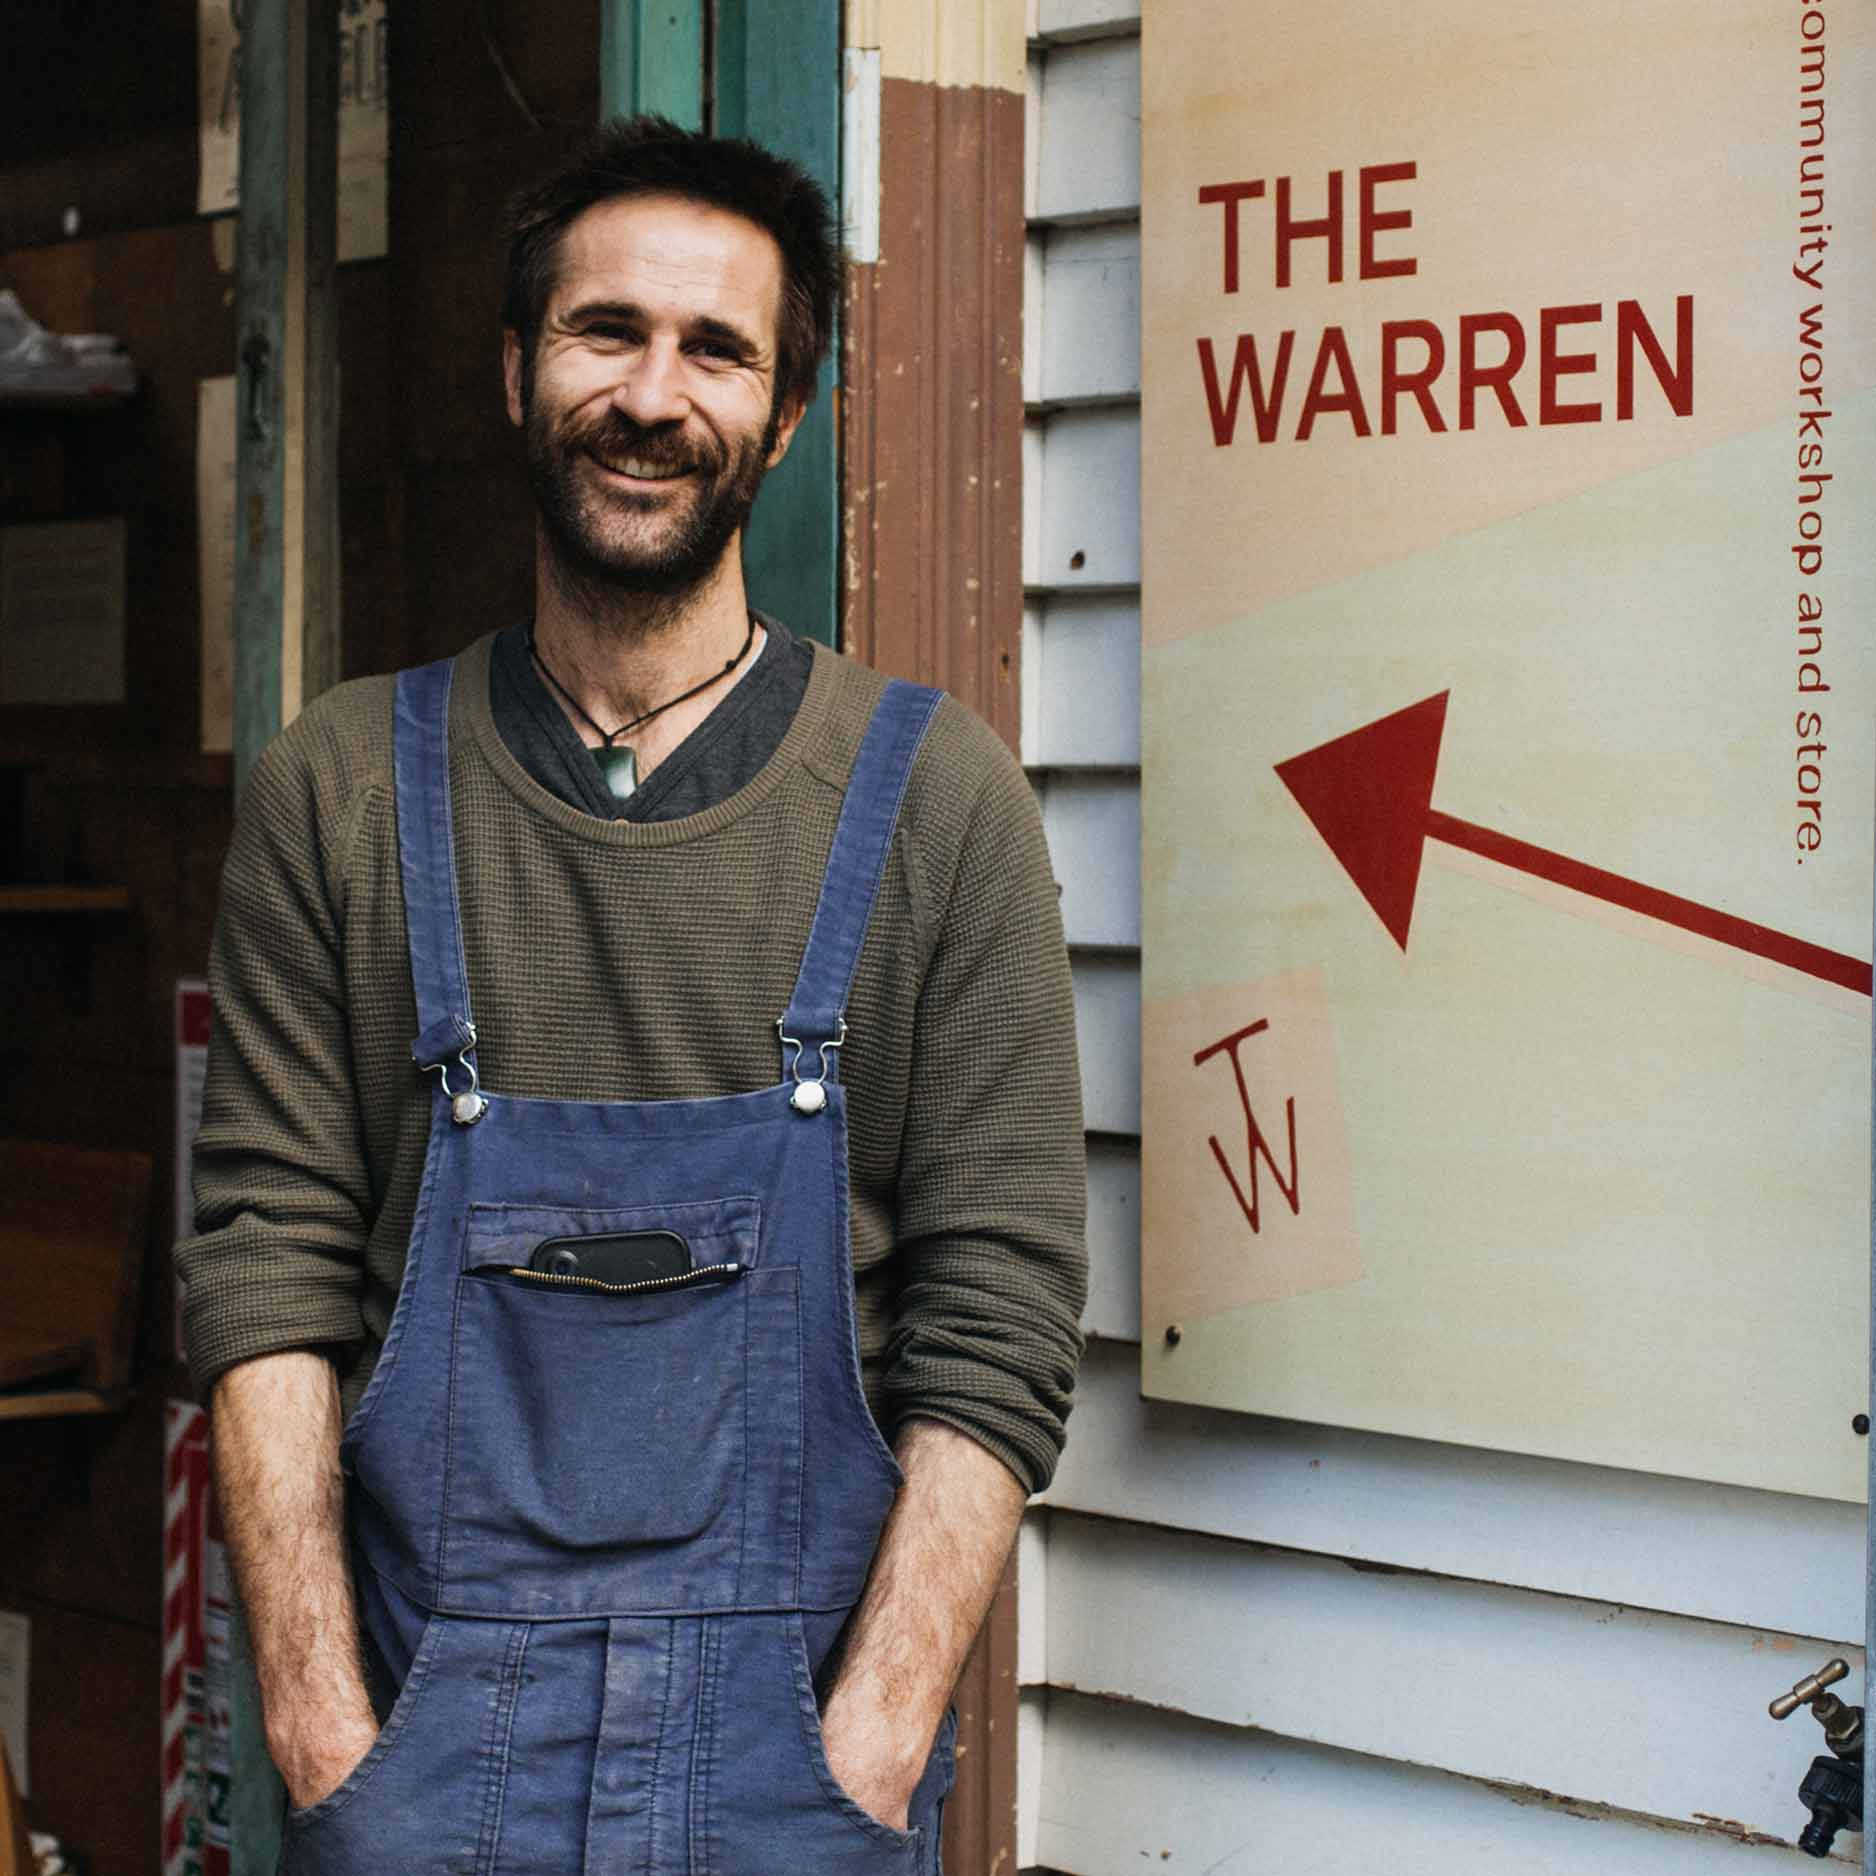 SOLD OUT Wood Workshop at The Warren